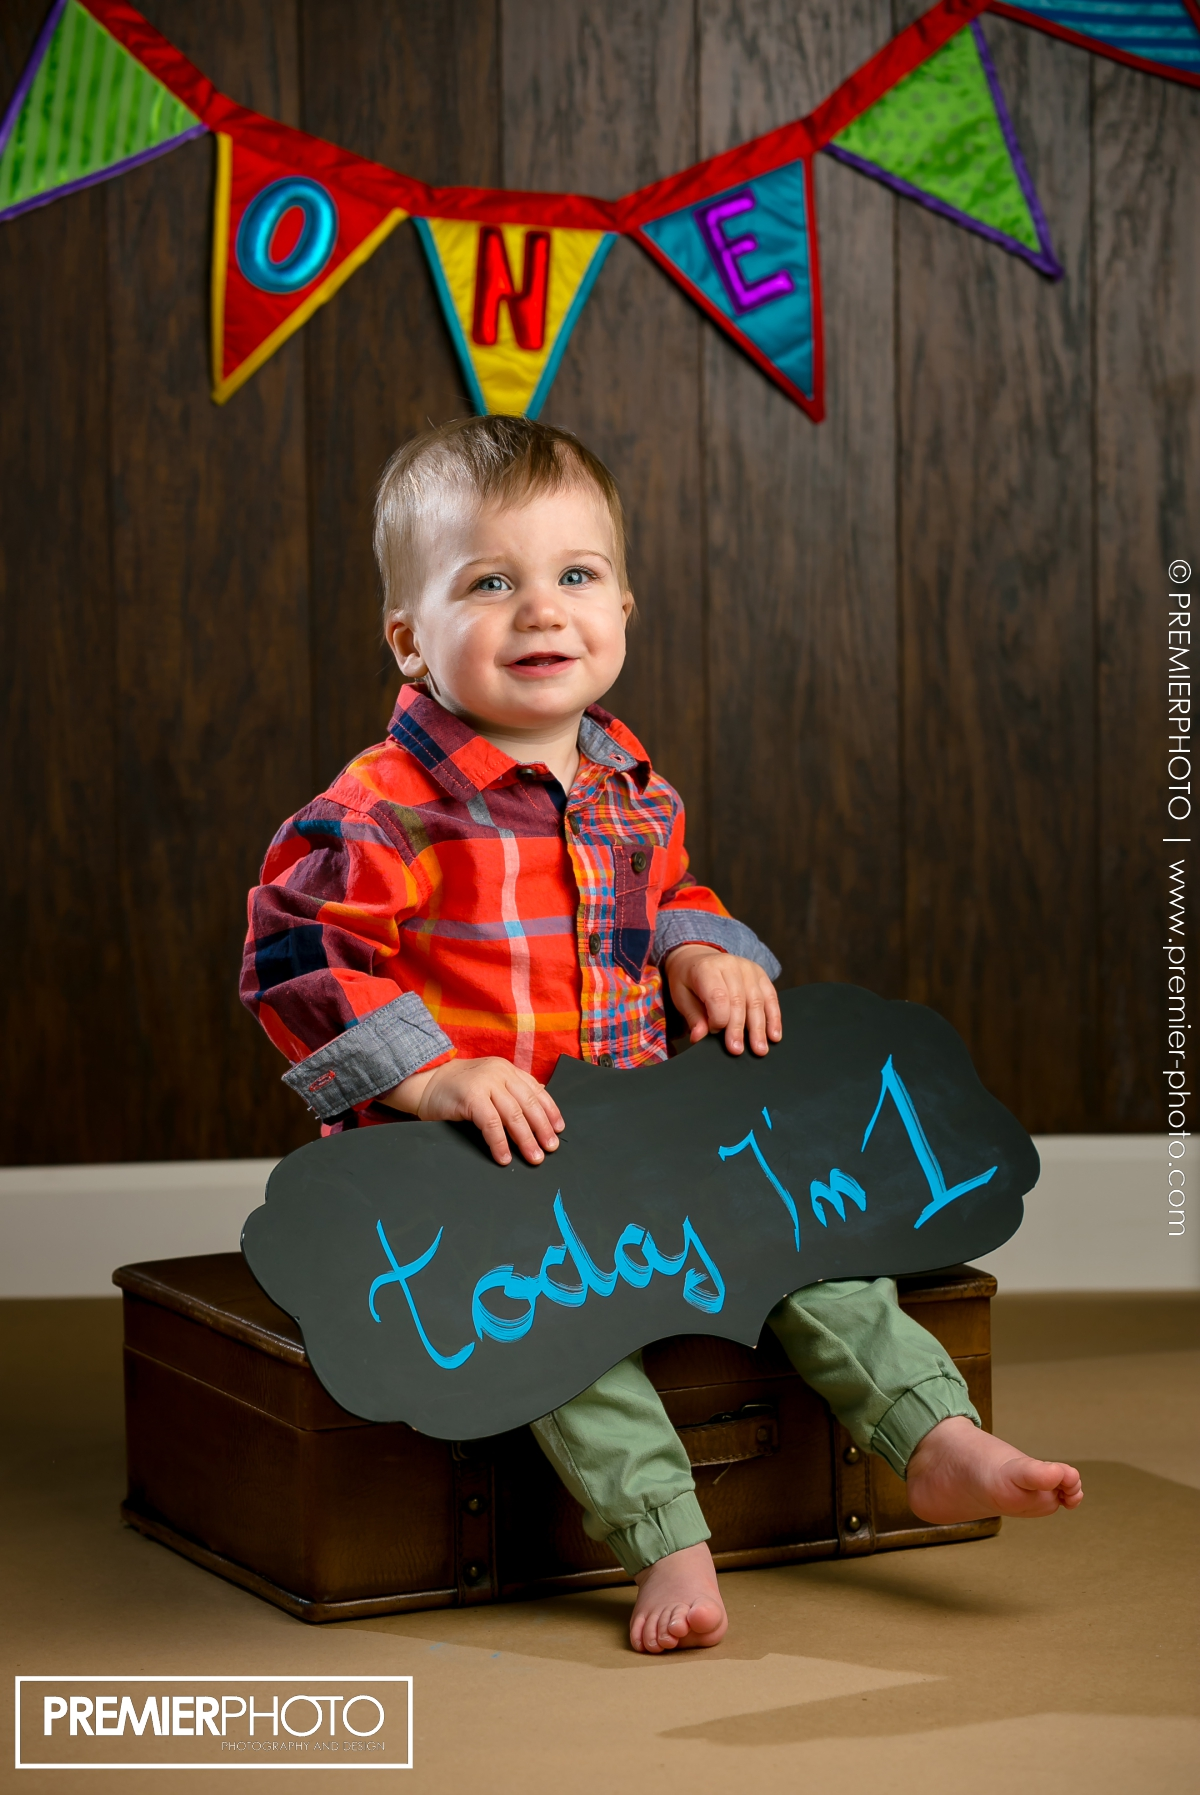 One year old boy birthday photographs